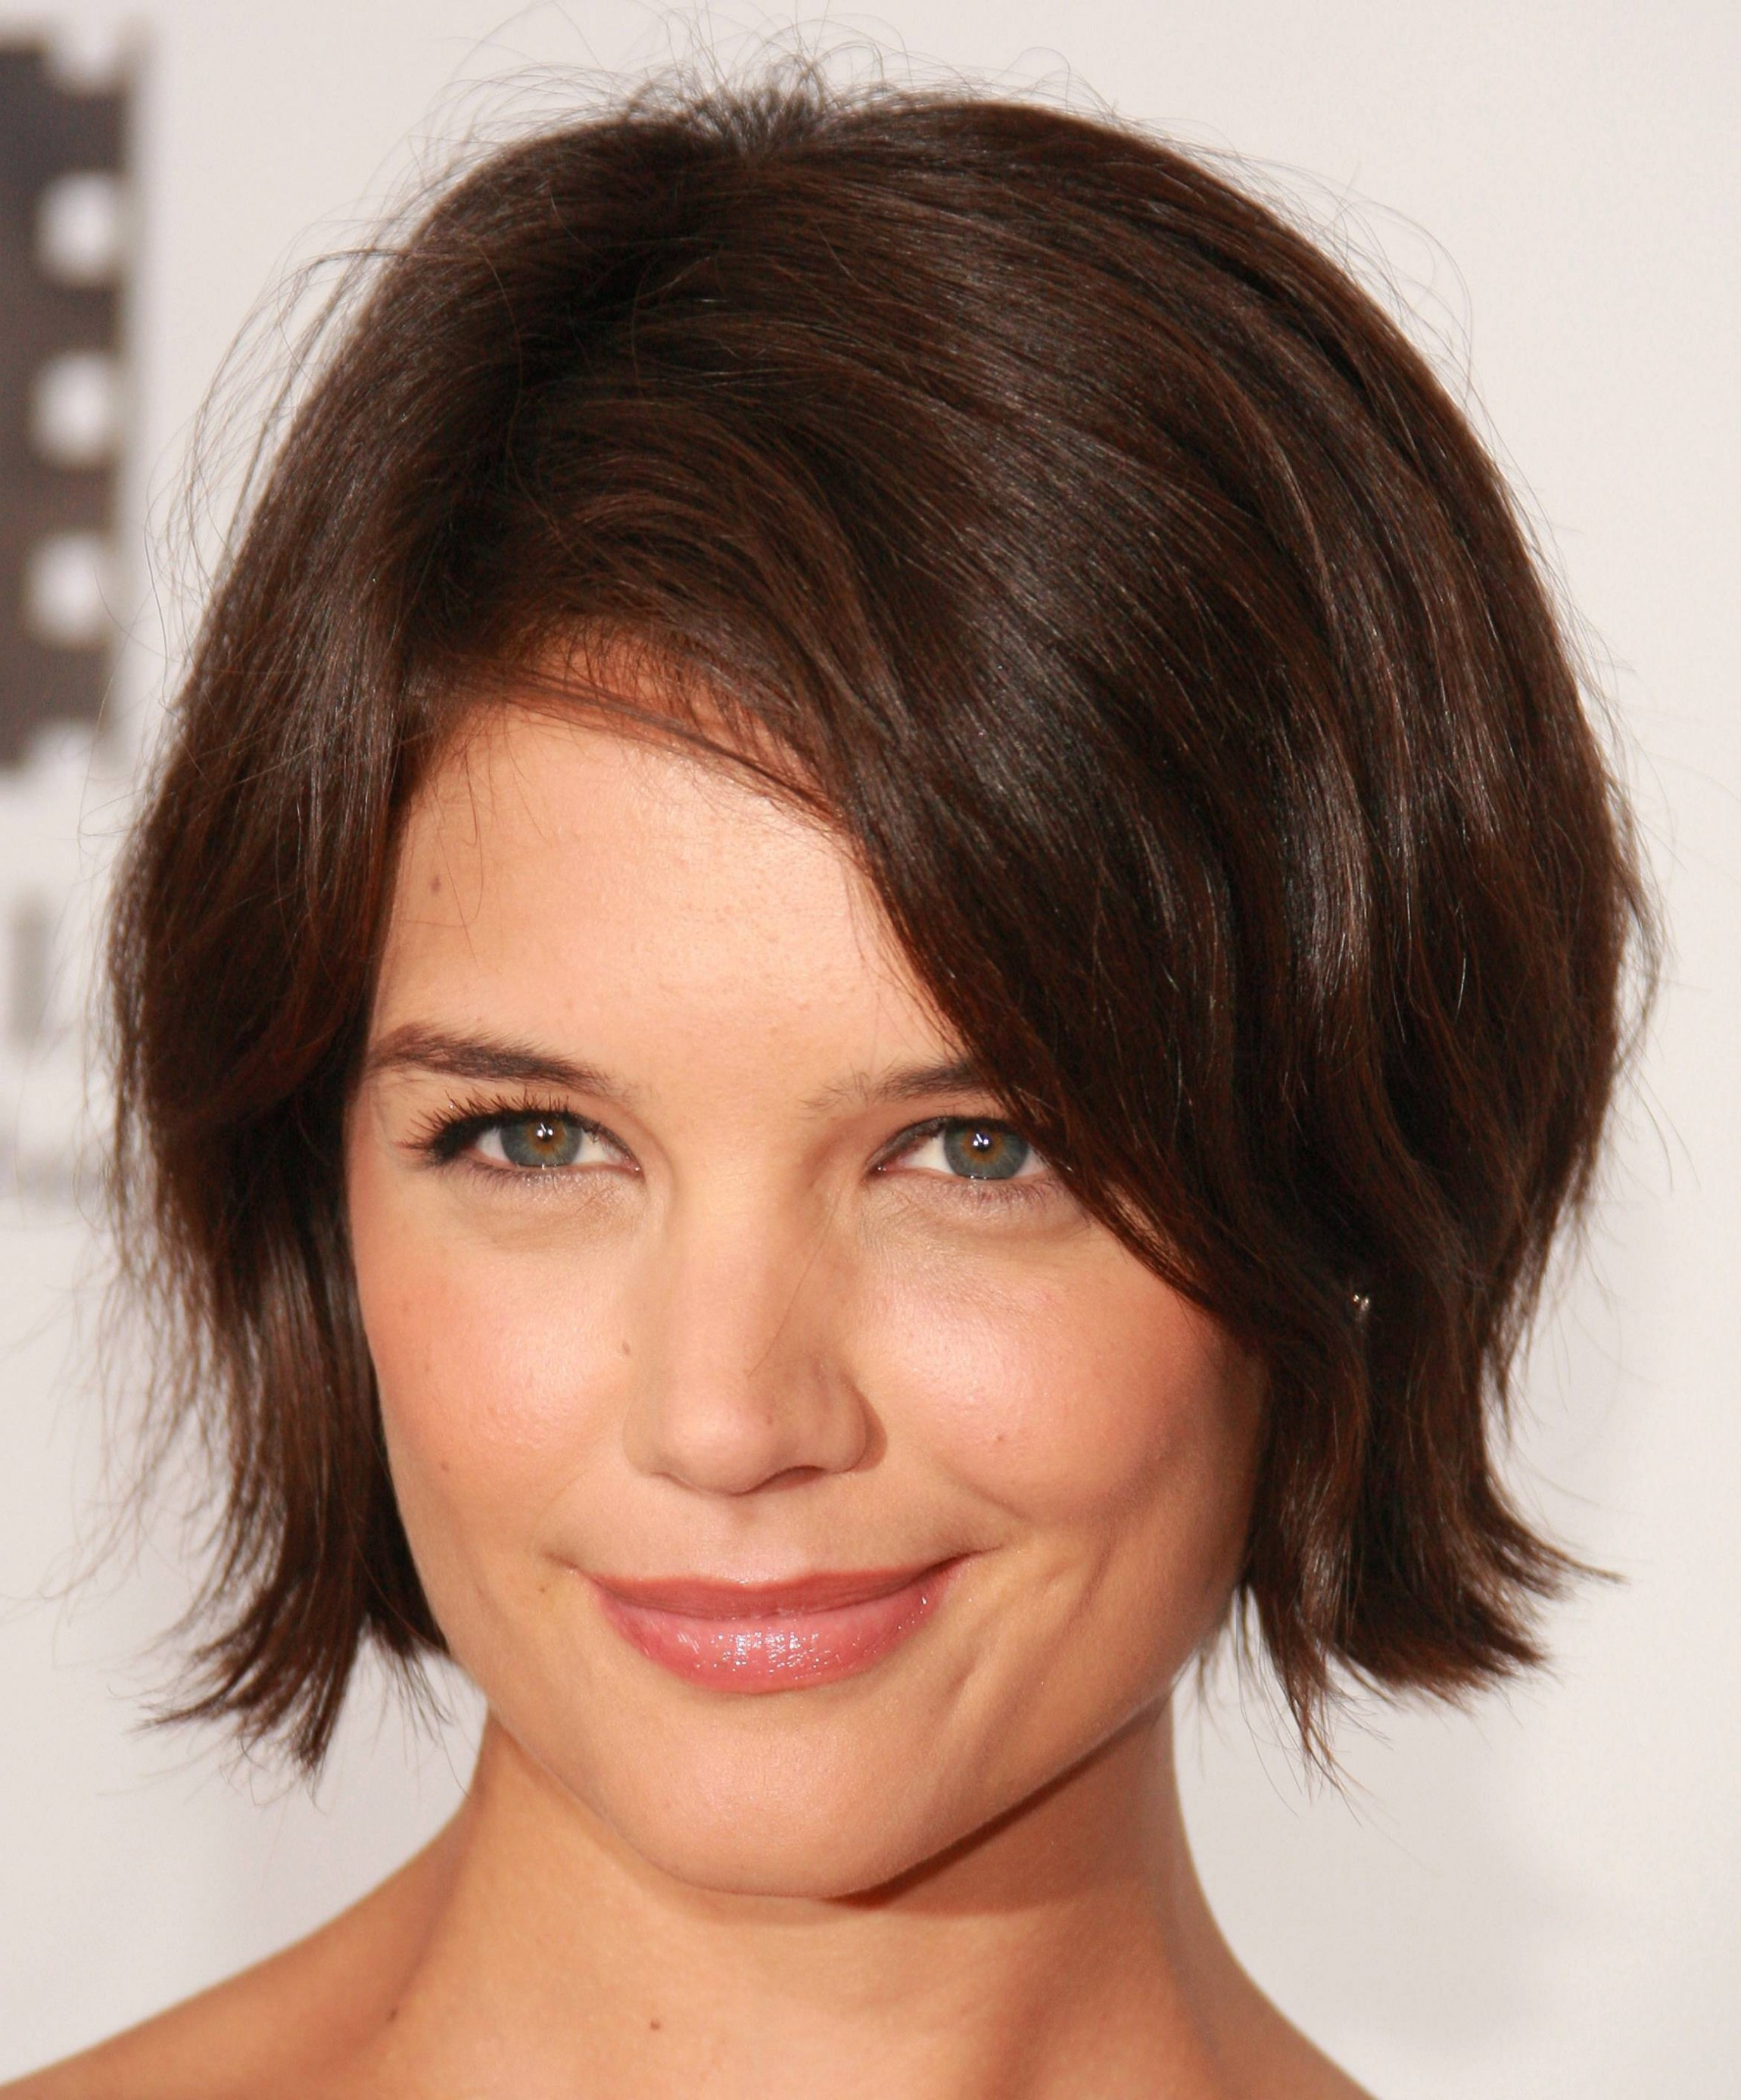 Best Short Hairstyles – Cute Hair Cut Guide For Round Face Shape In Flattering Short Haircuts For Round Faces (View 17 of 25)